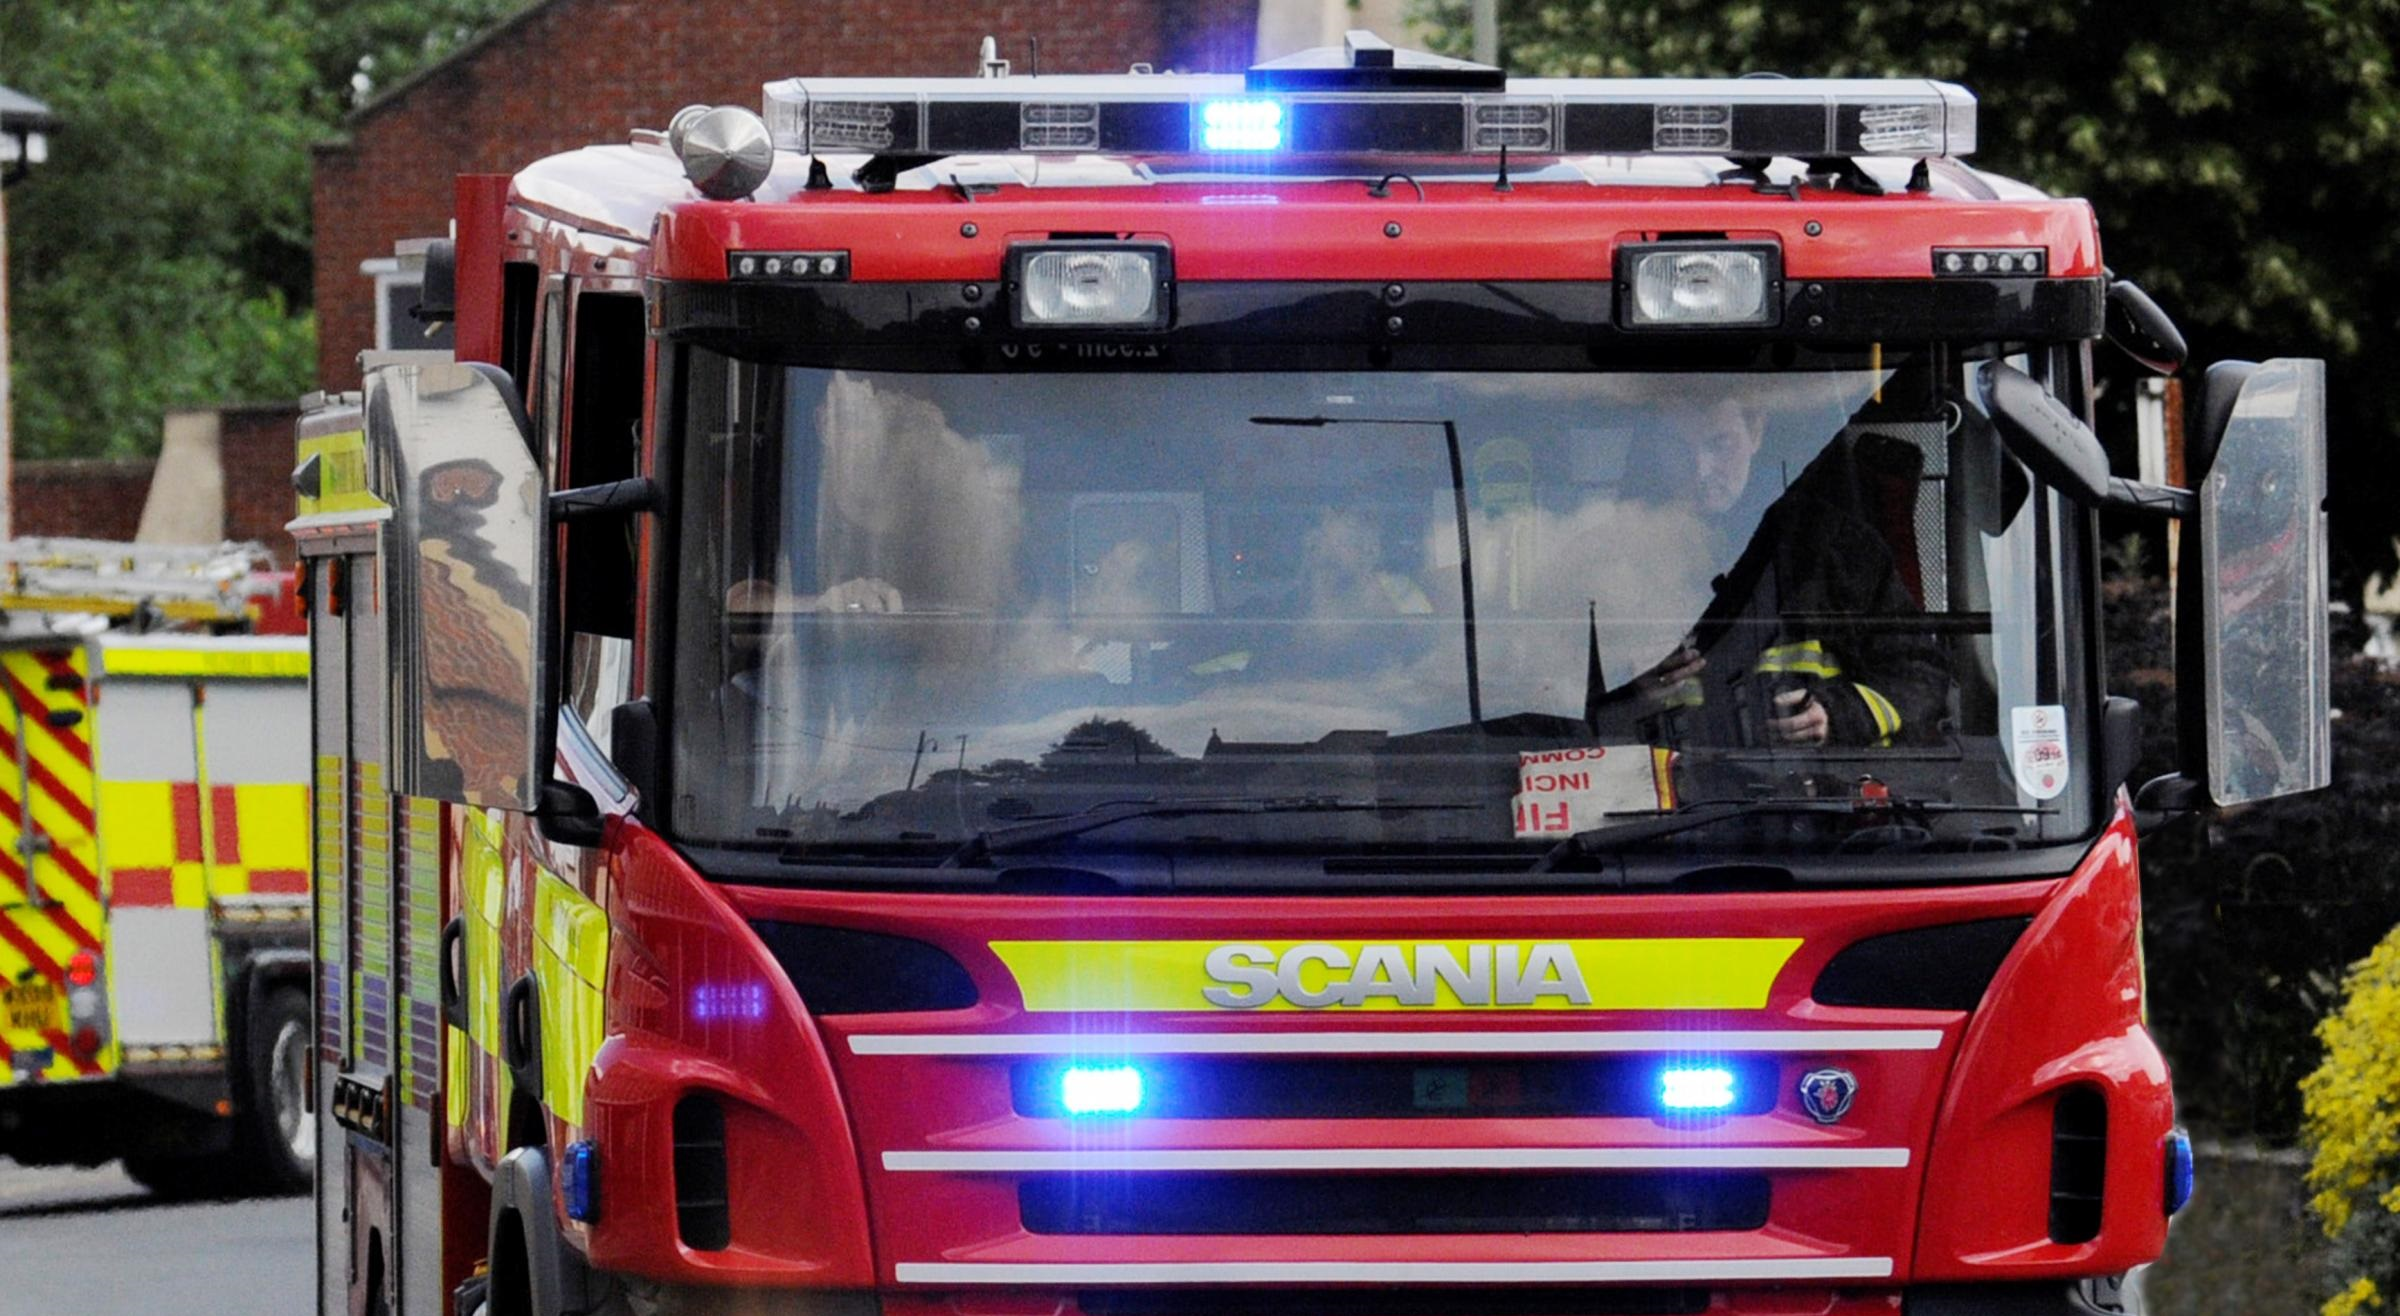 Dorset & Wiltshire Fire and Rescue Service was called to the farm in Brick Hill at 8.55pm